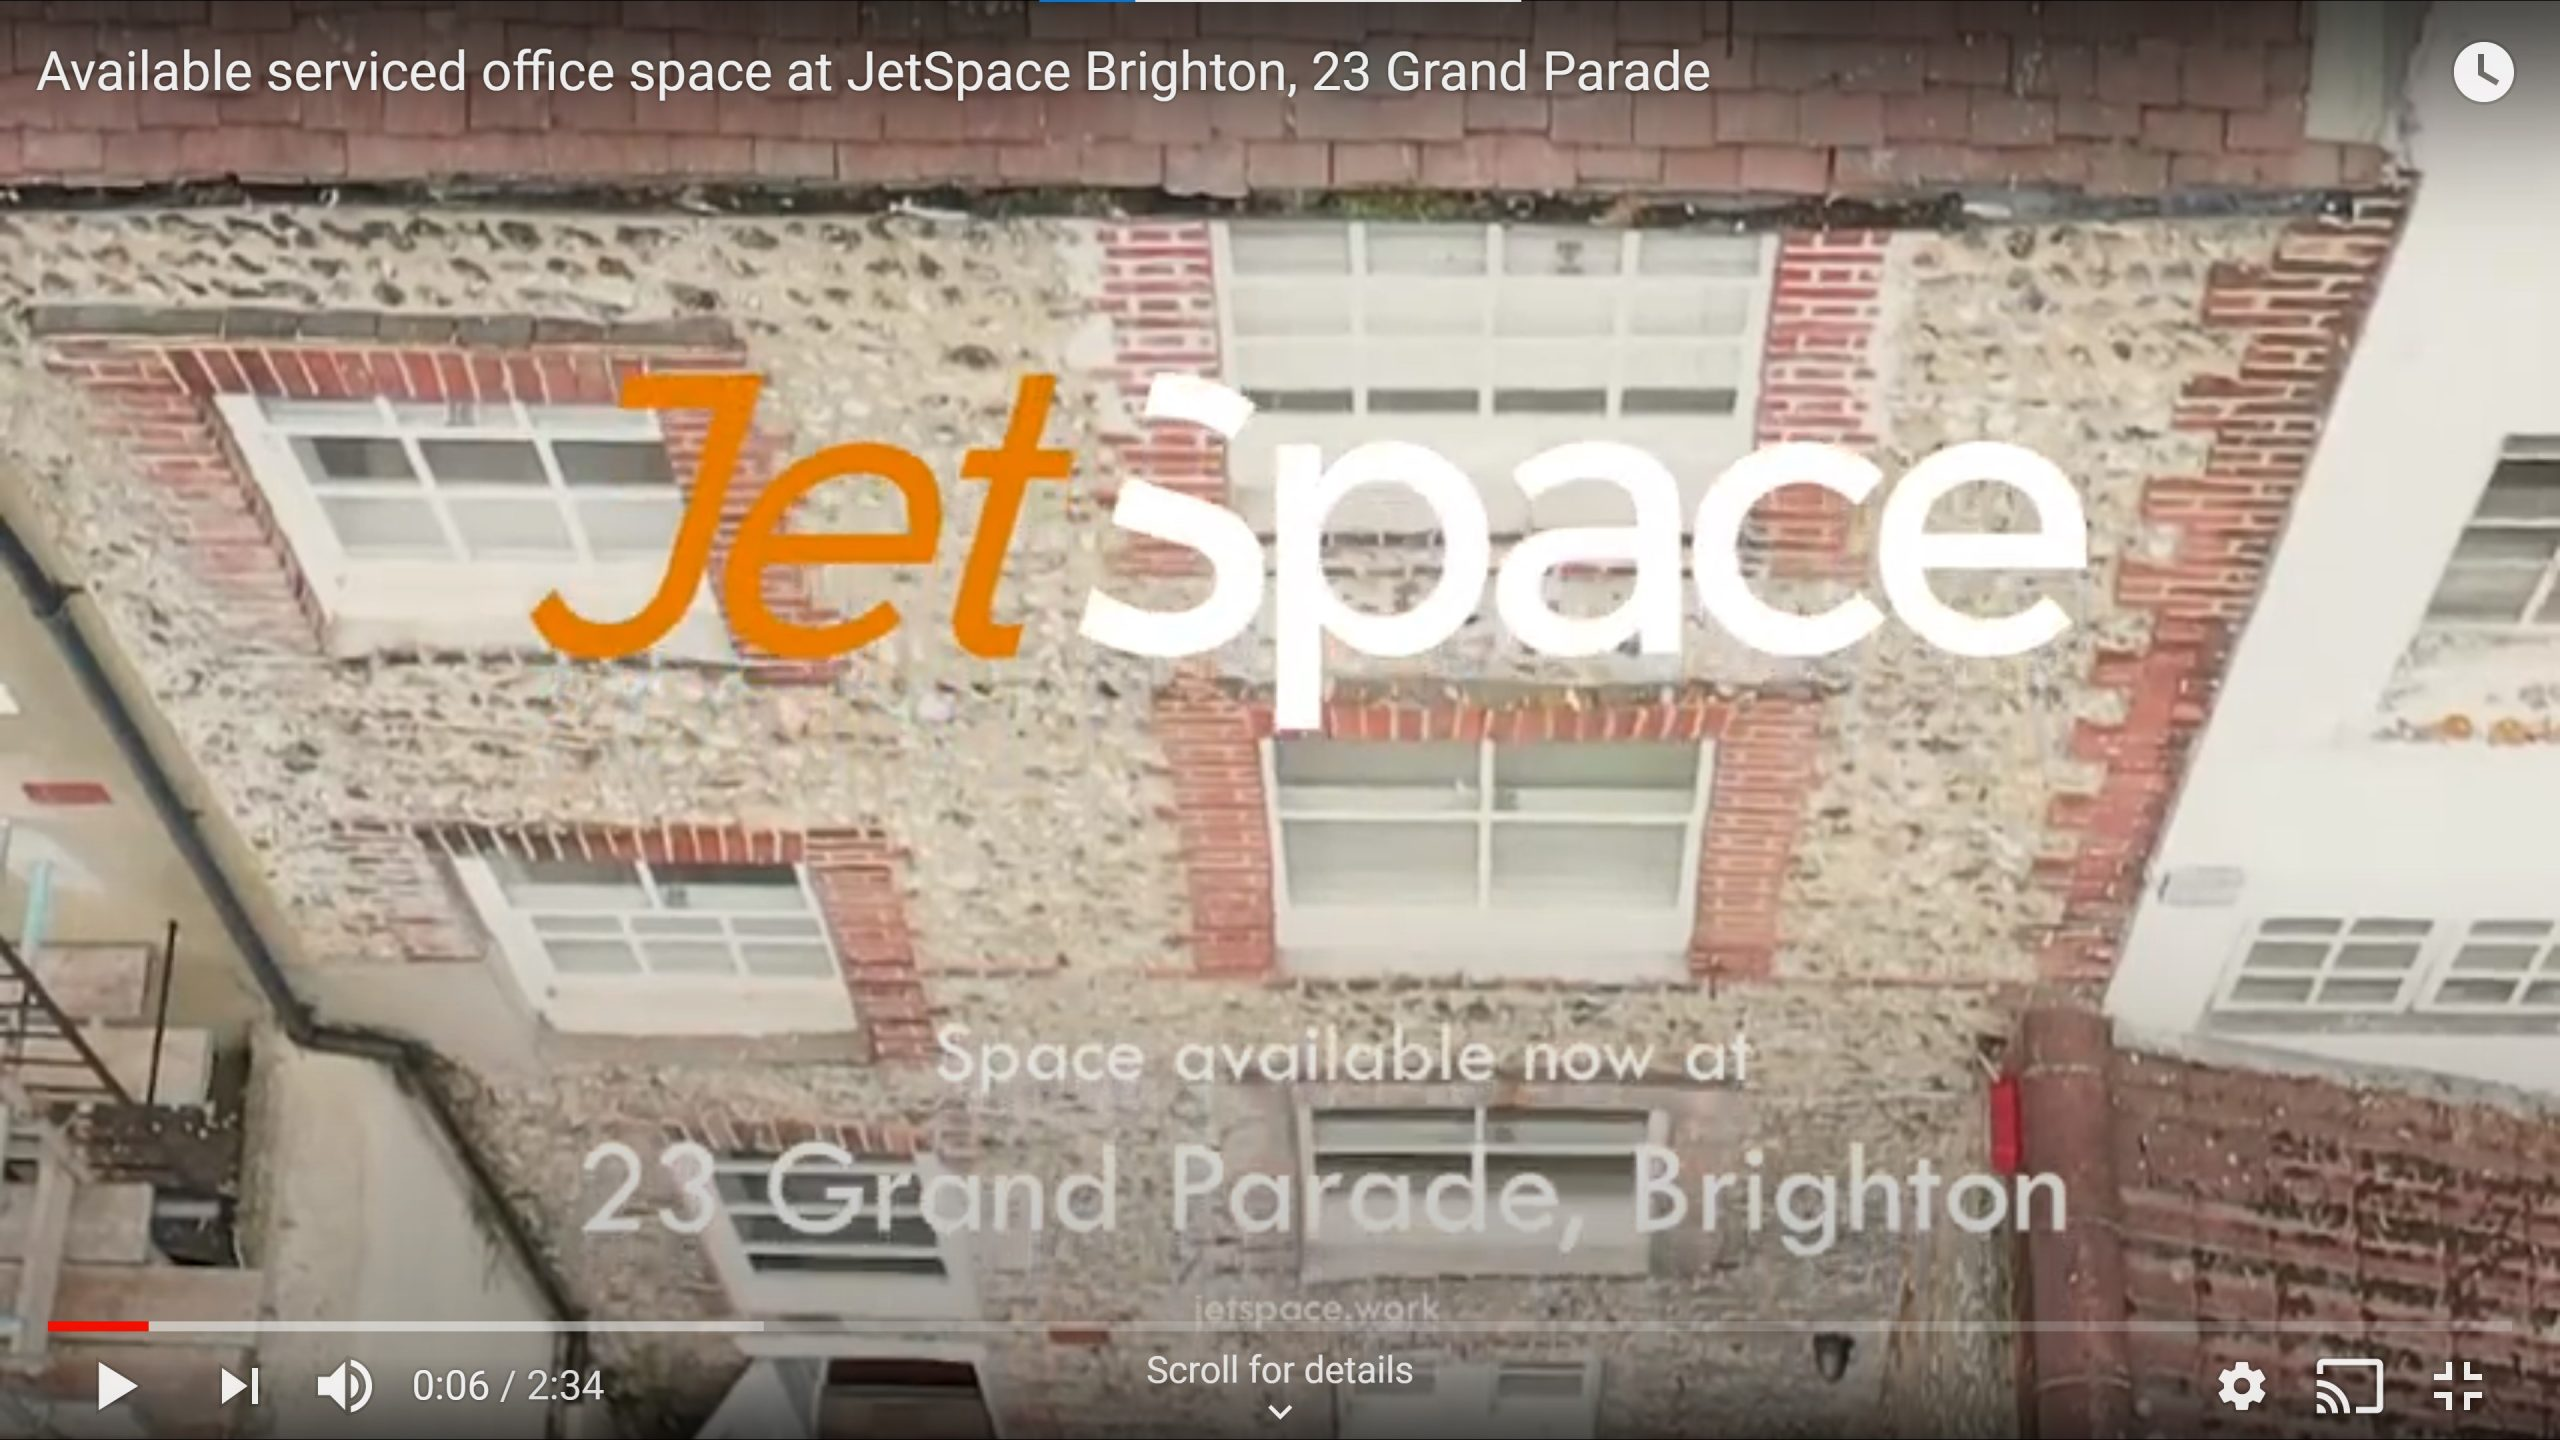 Brighton available office space video